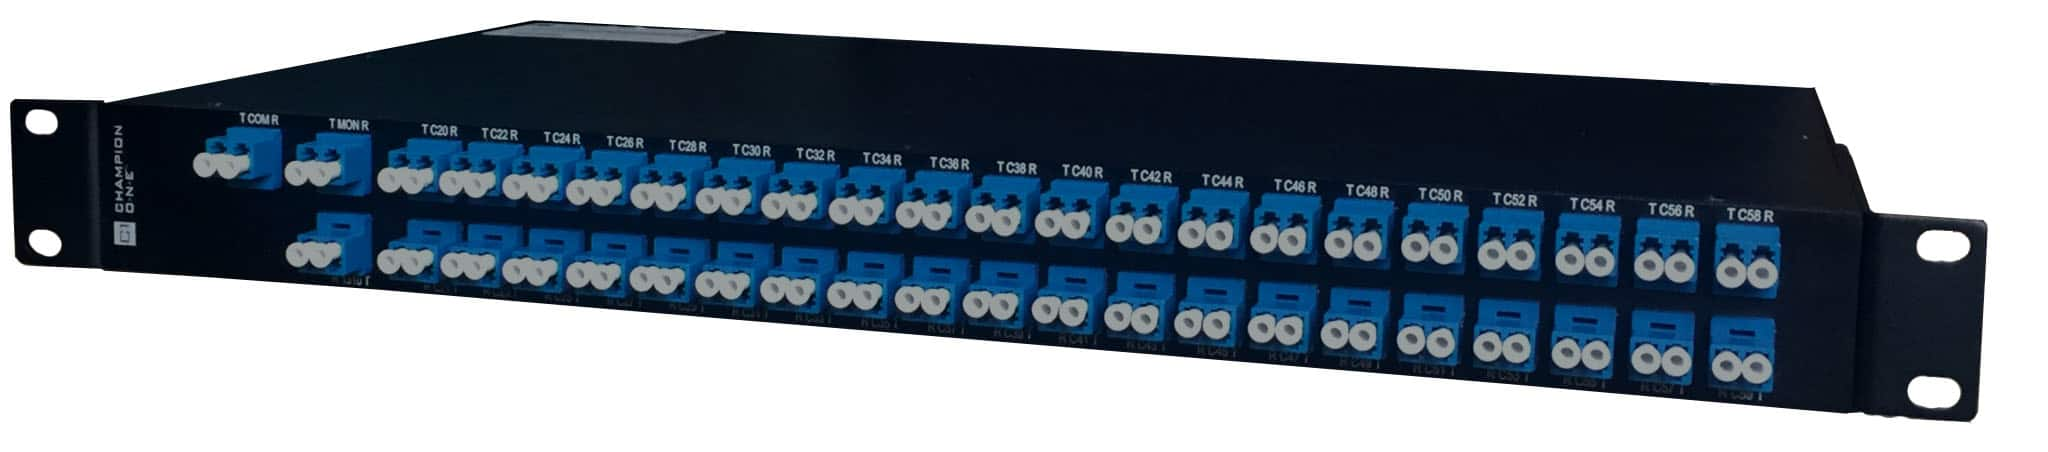 40 Channel DWDM Mux/Demux, ch. 21 start (no skips) in 1RU Enclosure